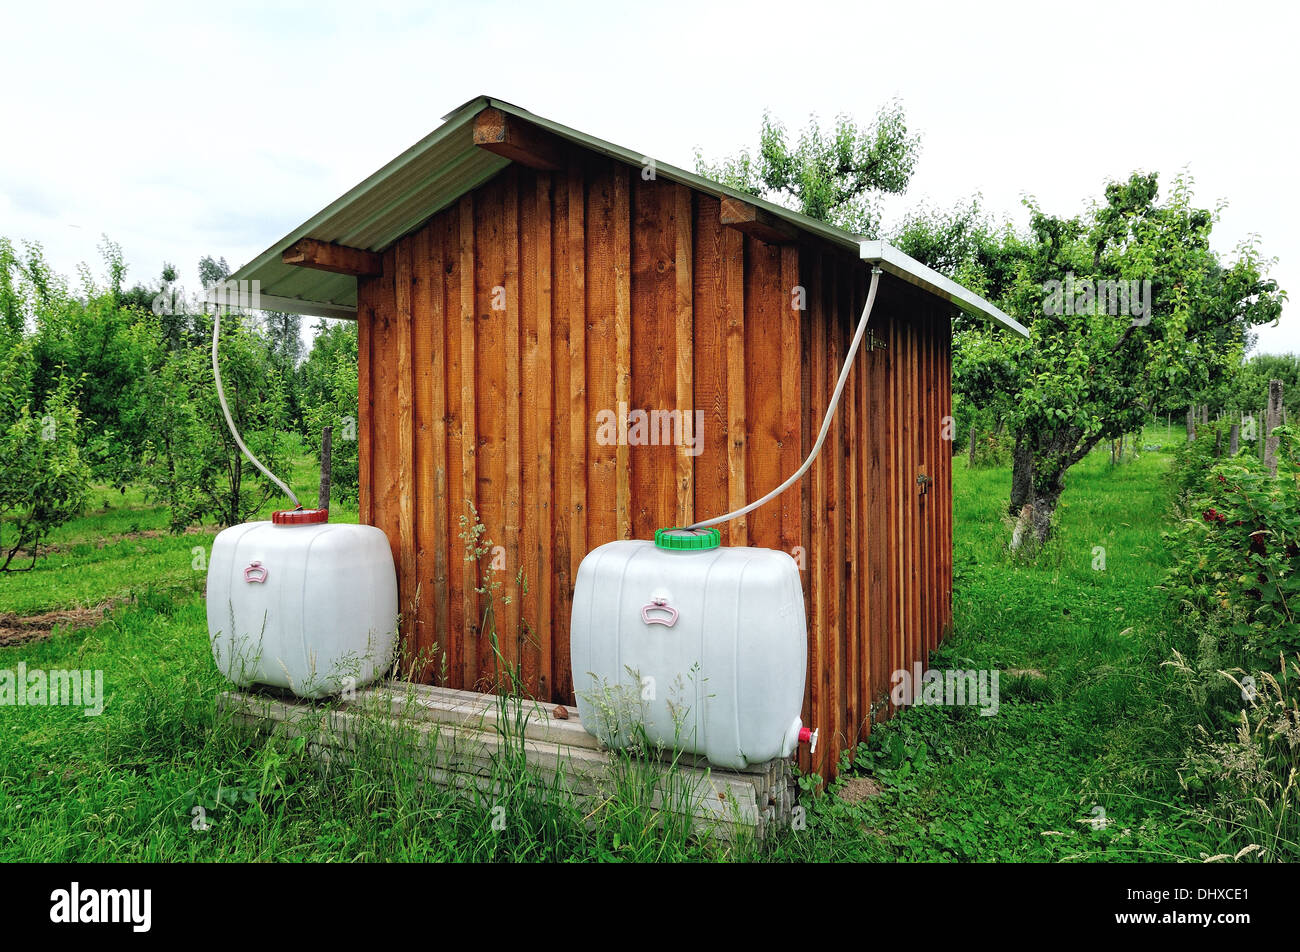 water station - Stock Image